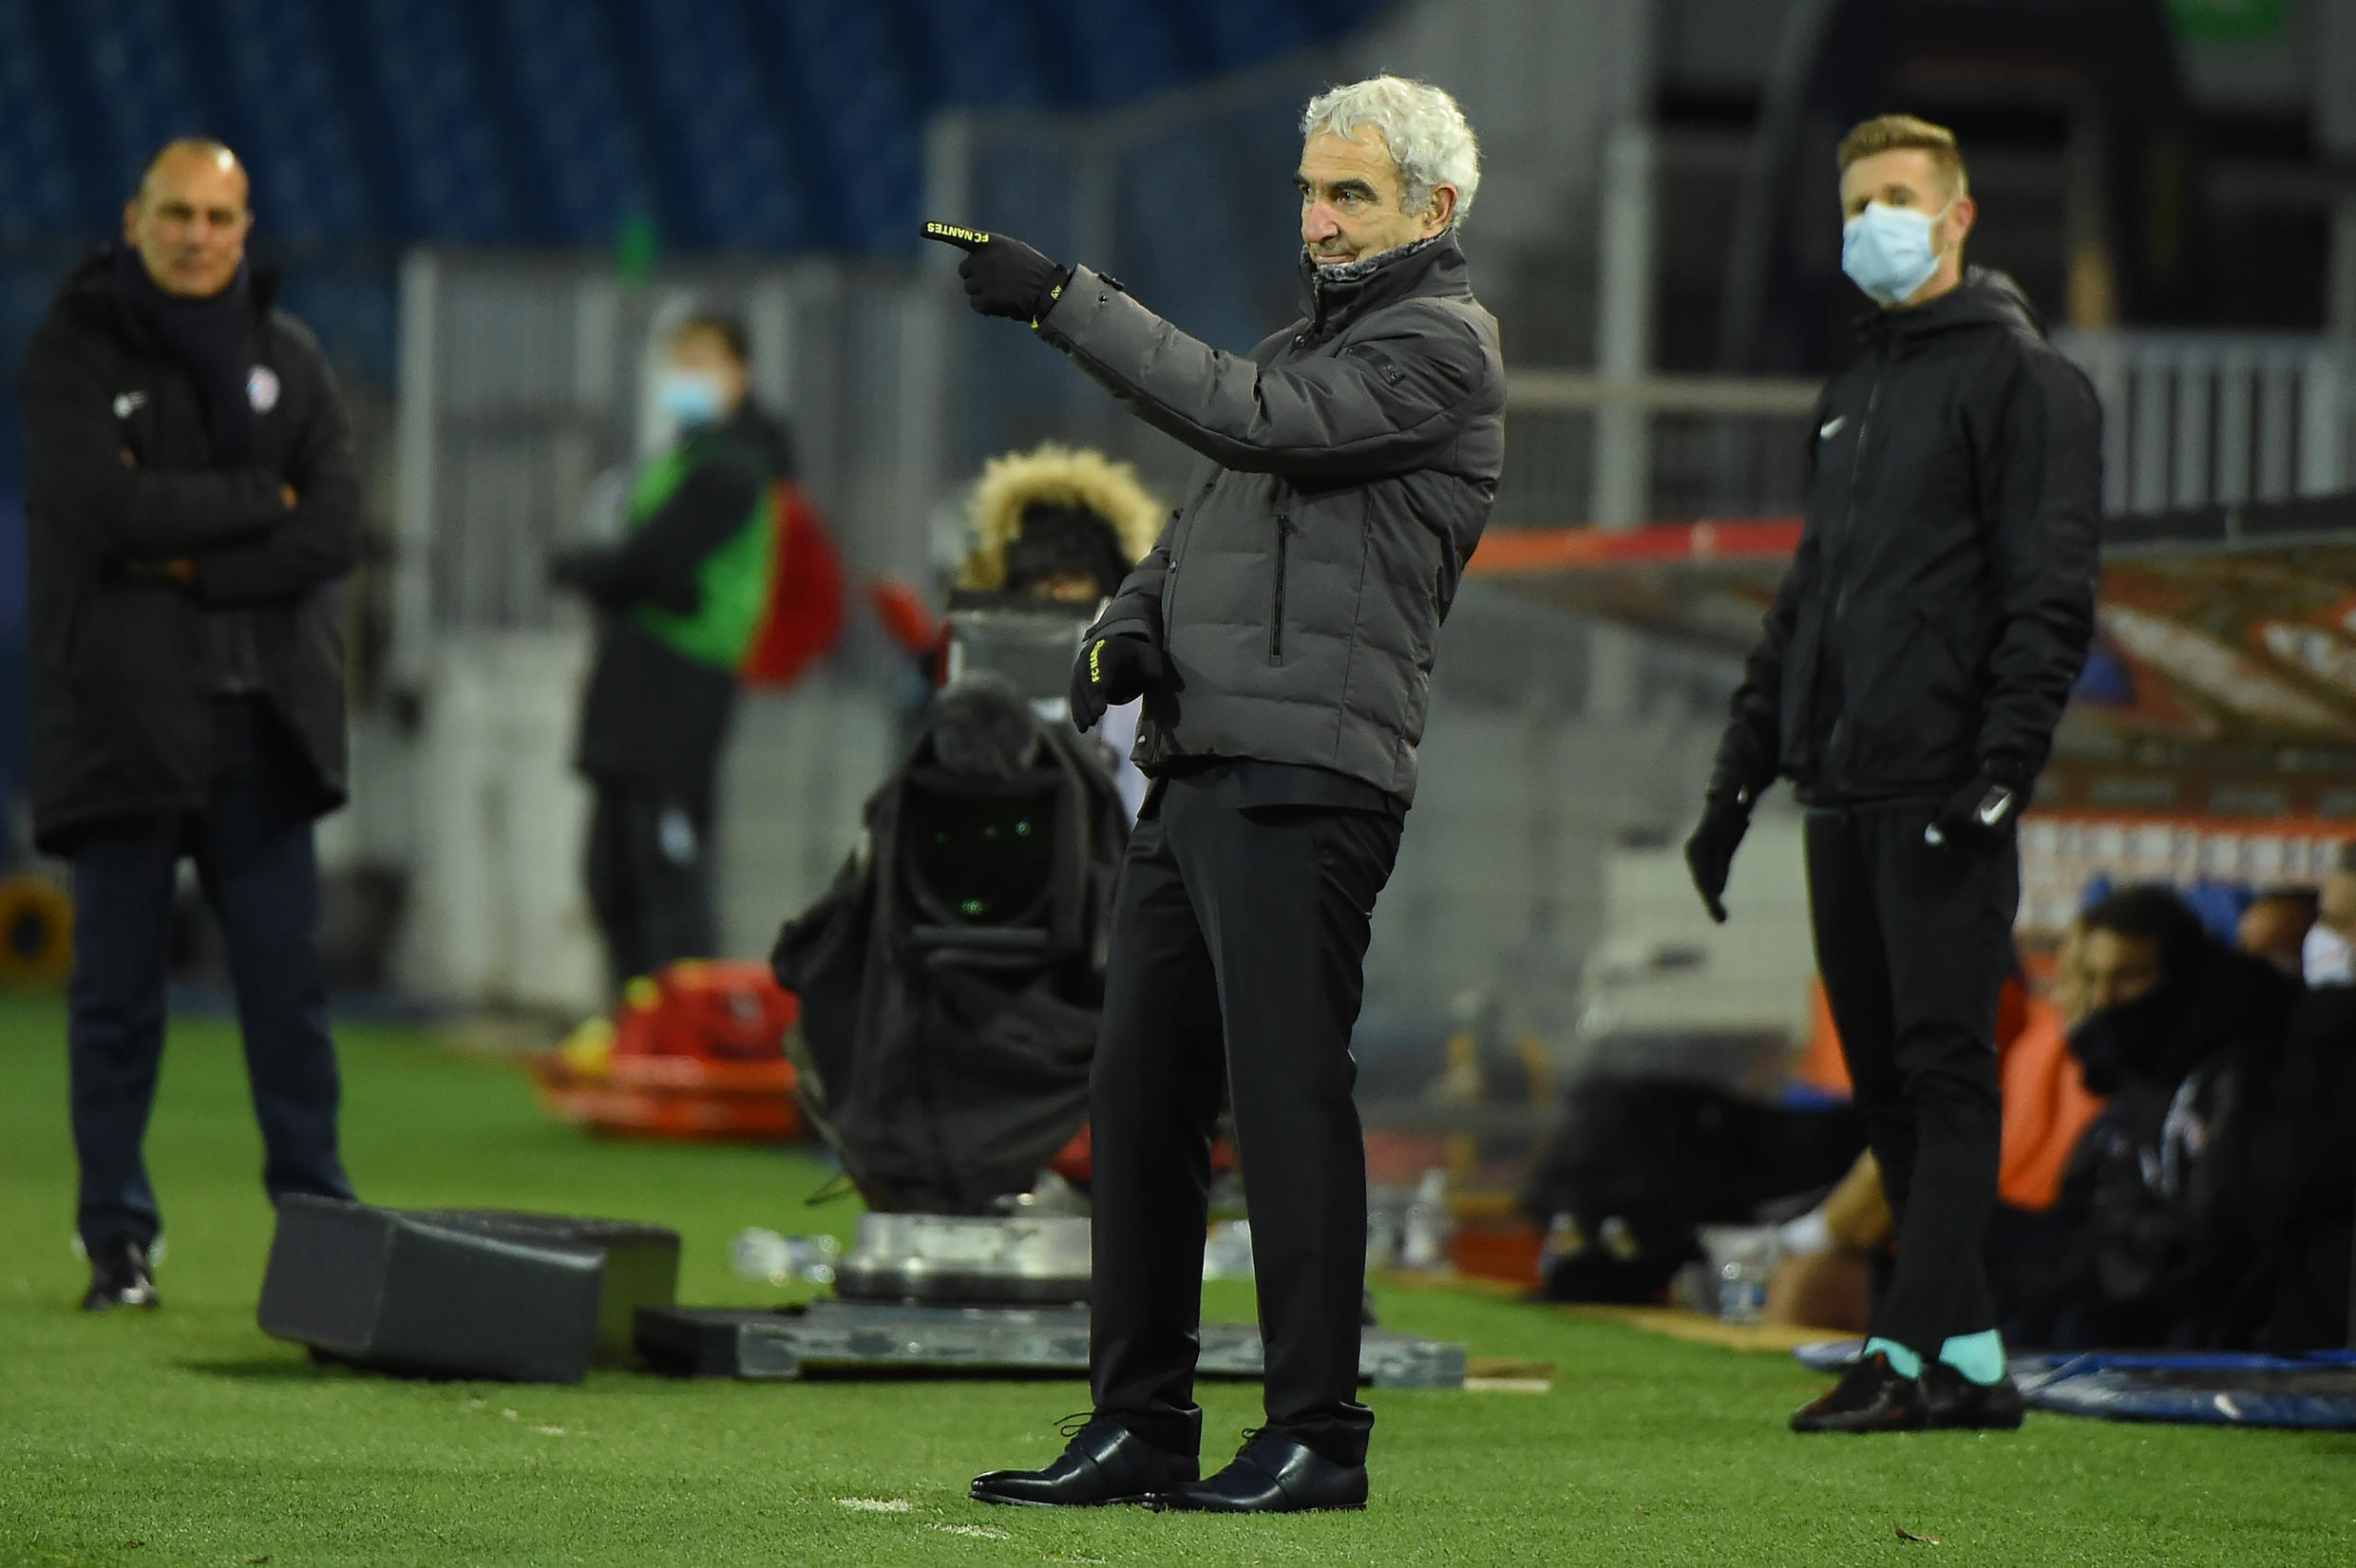 Nantes trainer, Raymond Domenech (c), during a Ligue 1 match in Montpellier, 9 January 2021